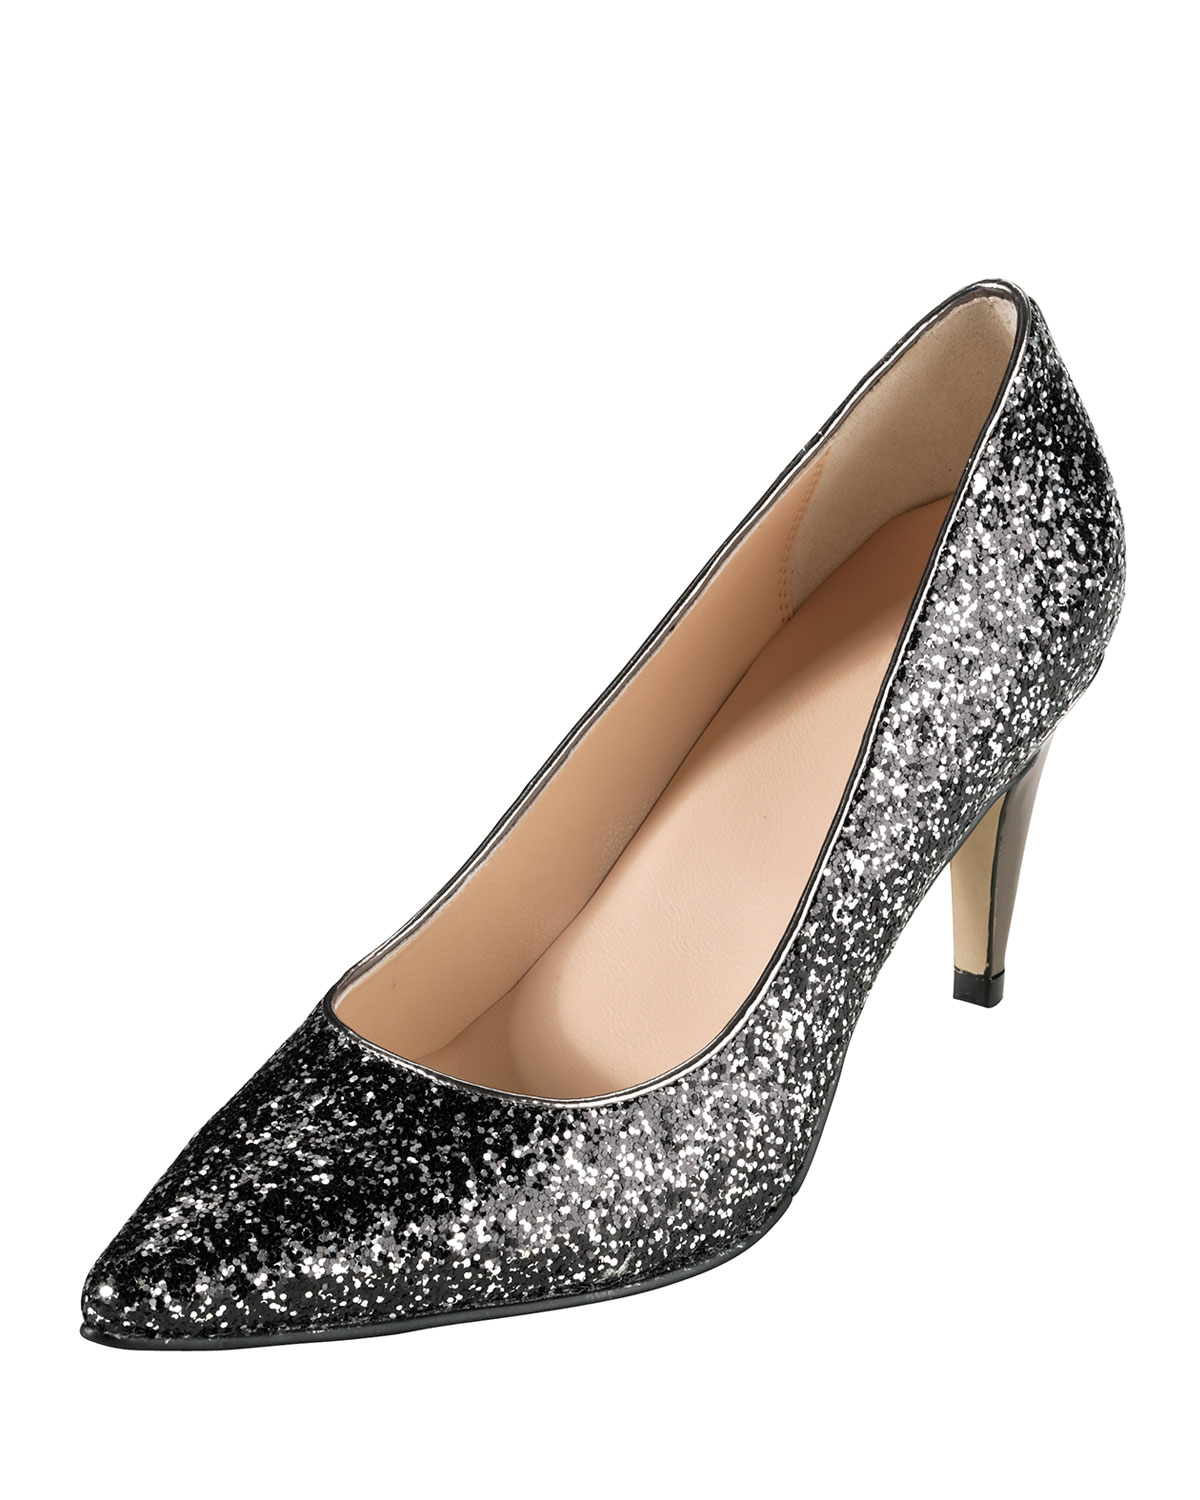 Rampage Silver Glitter Heels Pumps with Silver Bow Womens Size Large. Rampage · US 9. $ Rampage High Heel Pumps Women's Size 9 Black And Silver Glitter. Pre-Owned. Jacqueline Ferrar Shoes- Glitter Silver Open Toe Heels #A $ Buy It Now. SPONSORED.